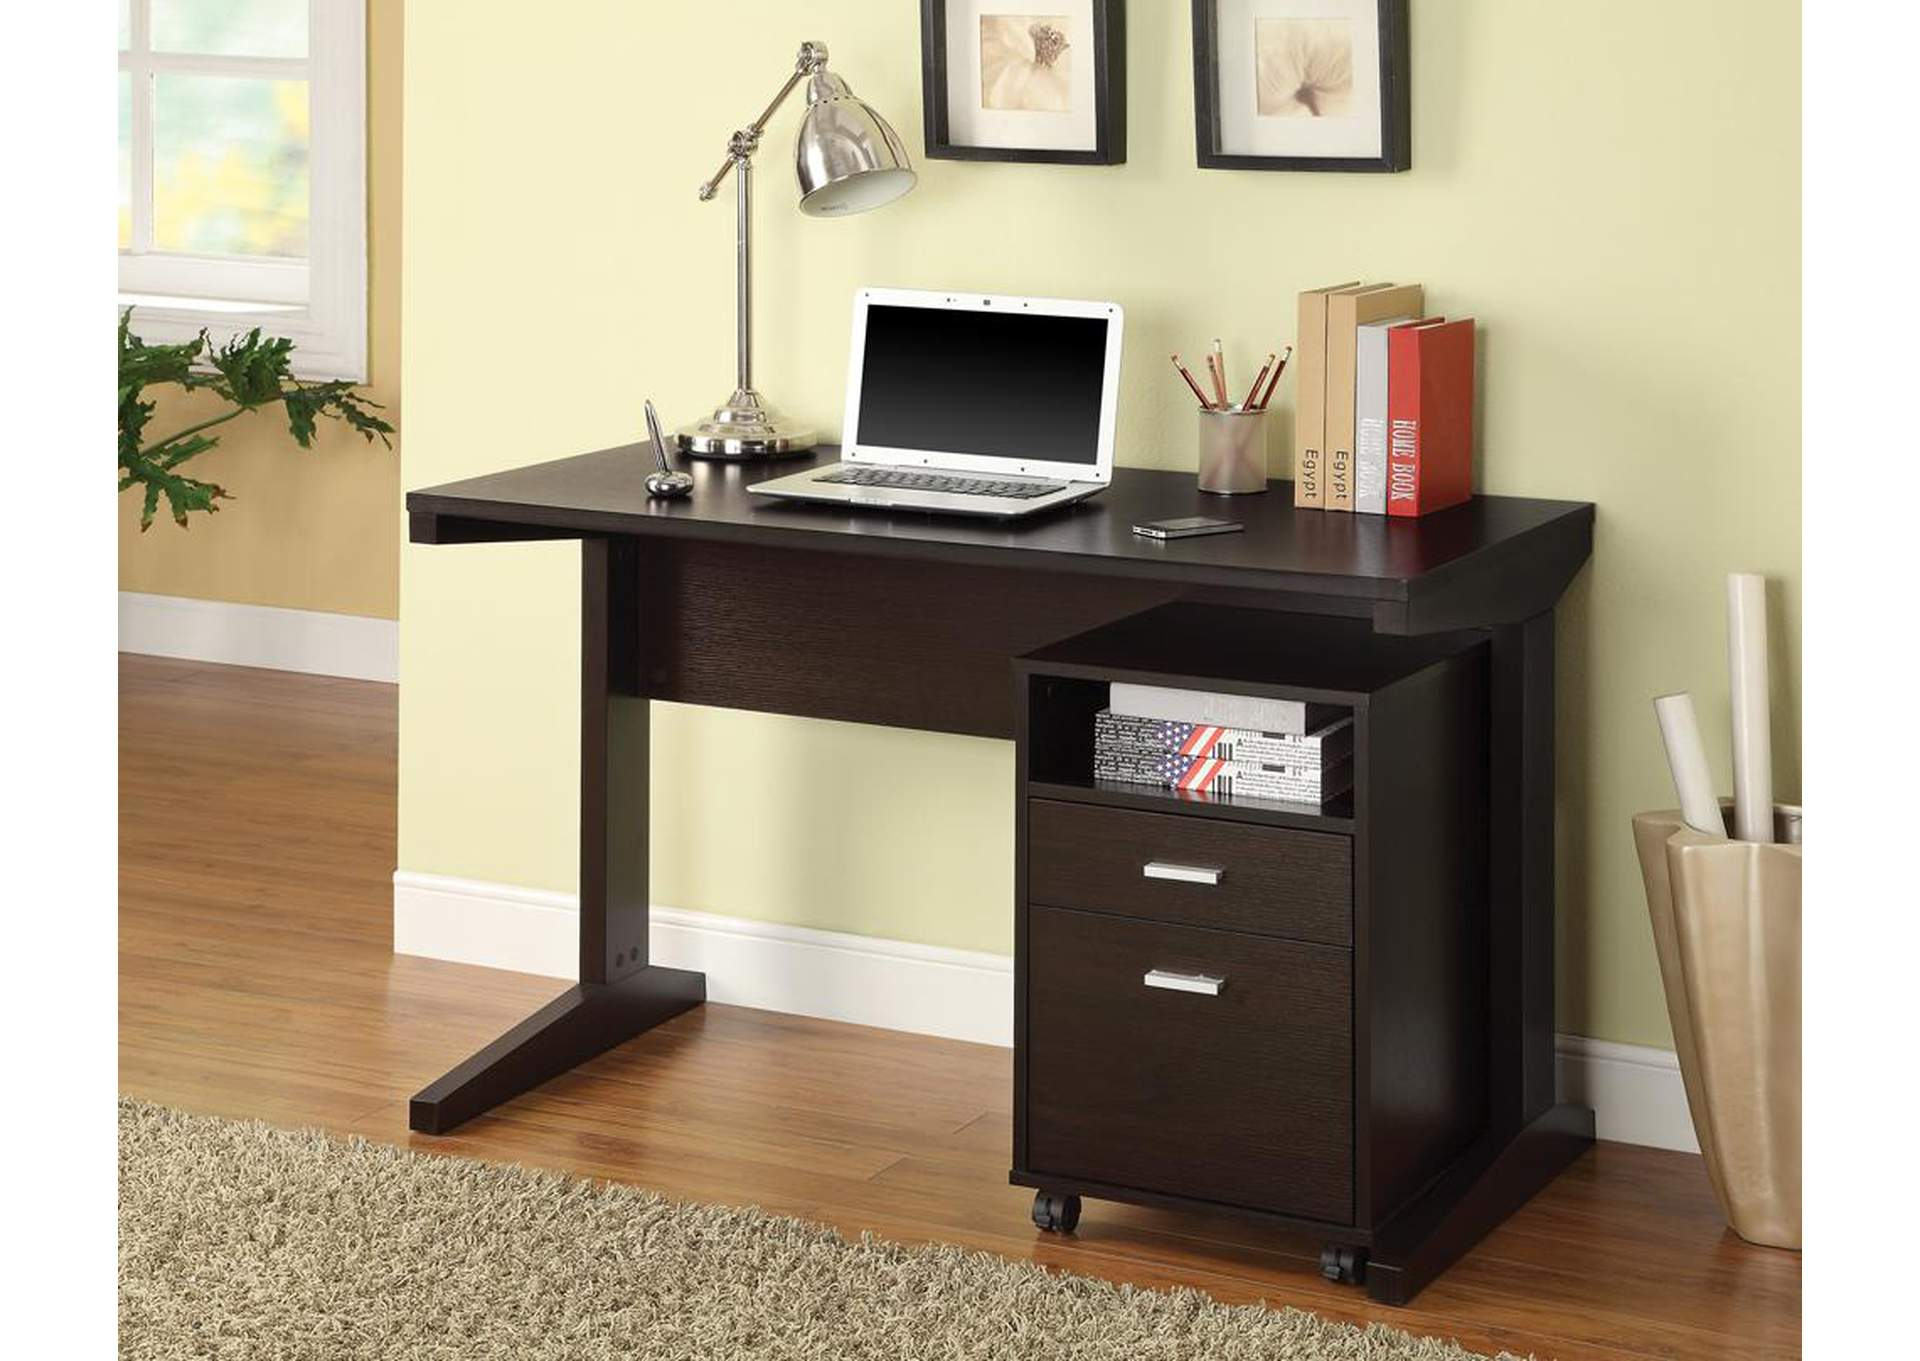 Cappiccino Office Desk & File Cabinet,Coaster Furniture